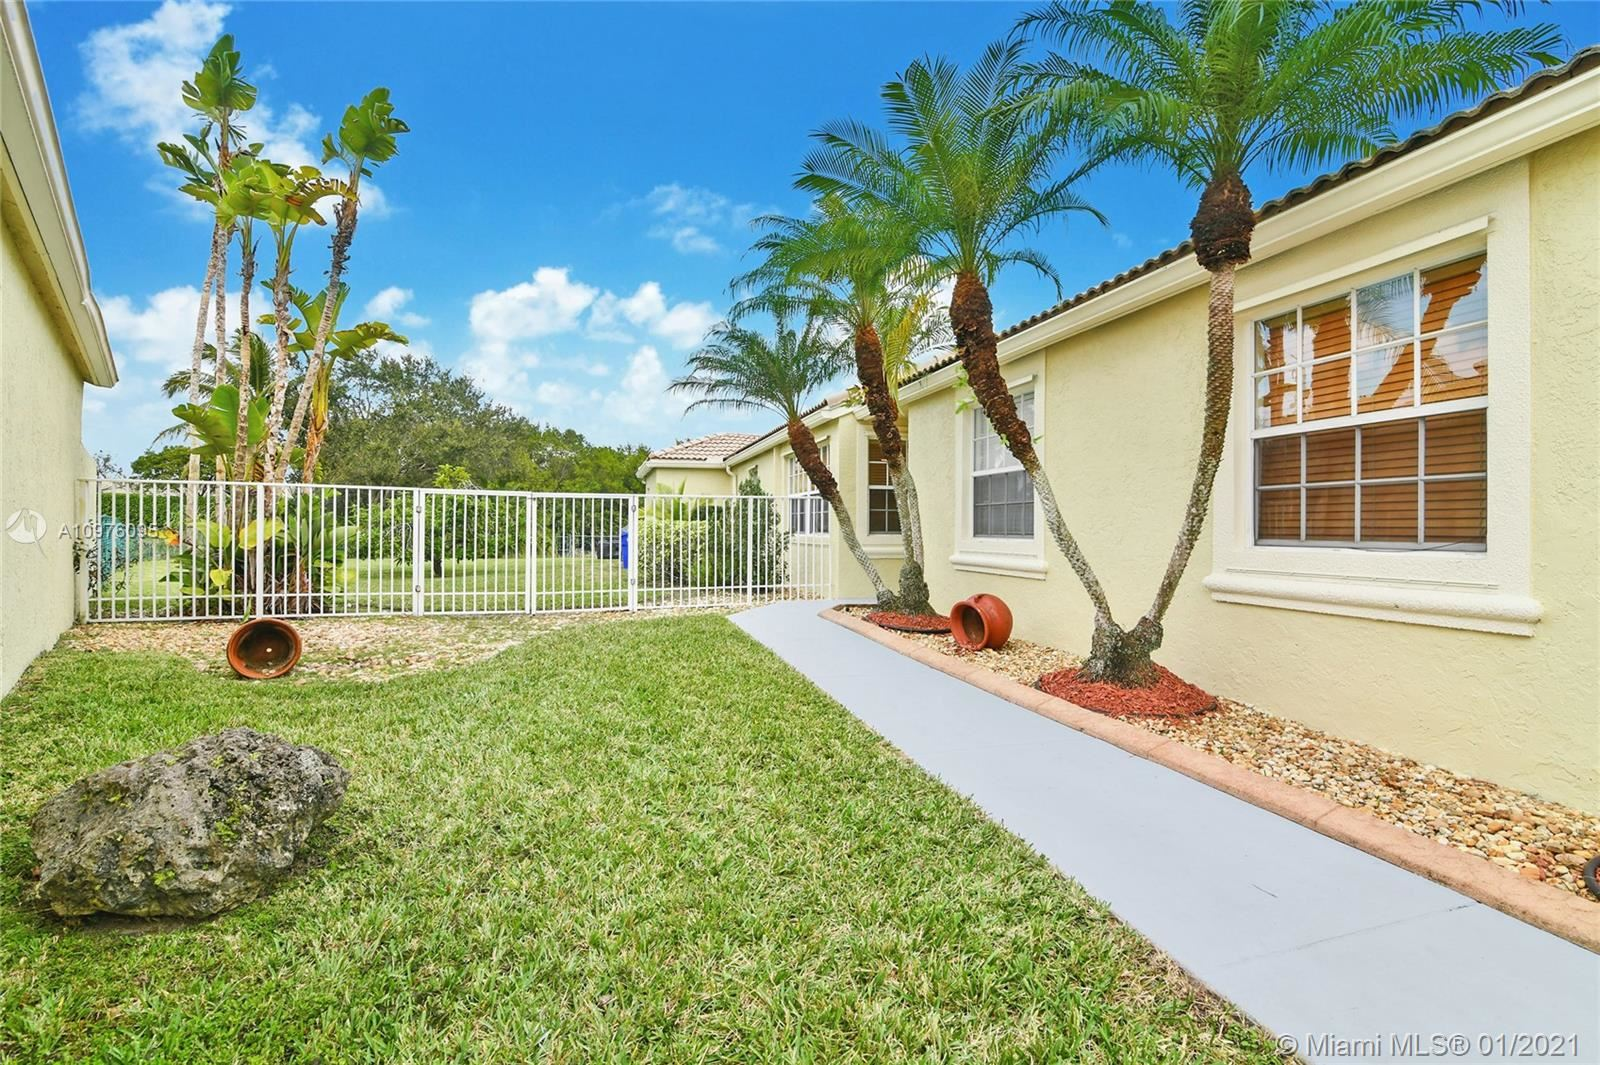 15705 NW 16th Ct, Pembroke Pines, FL 33028 - #: A10976095